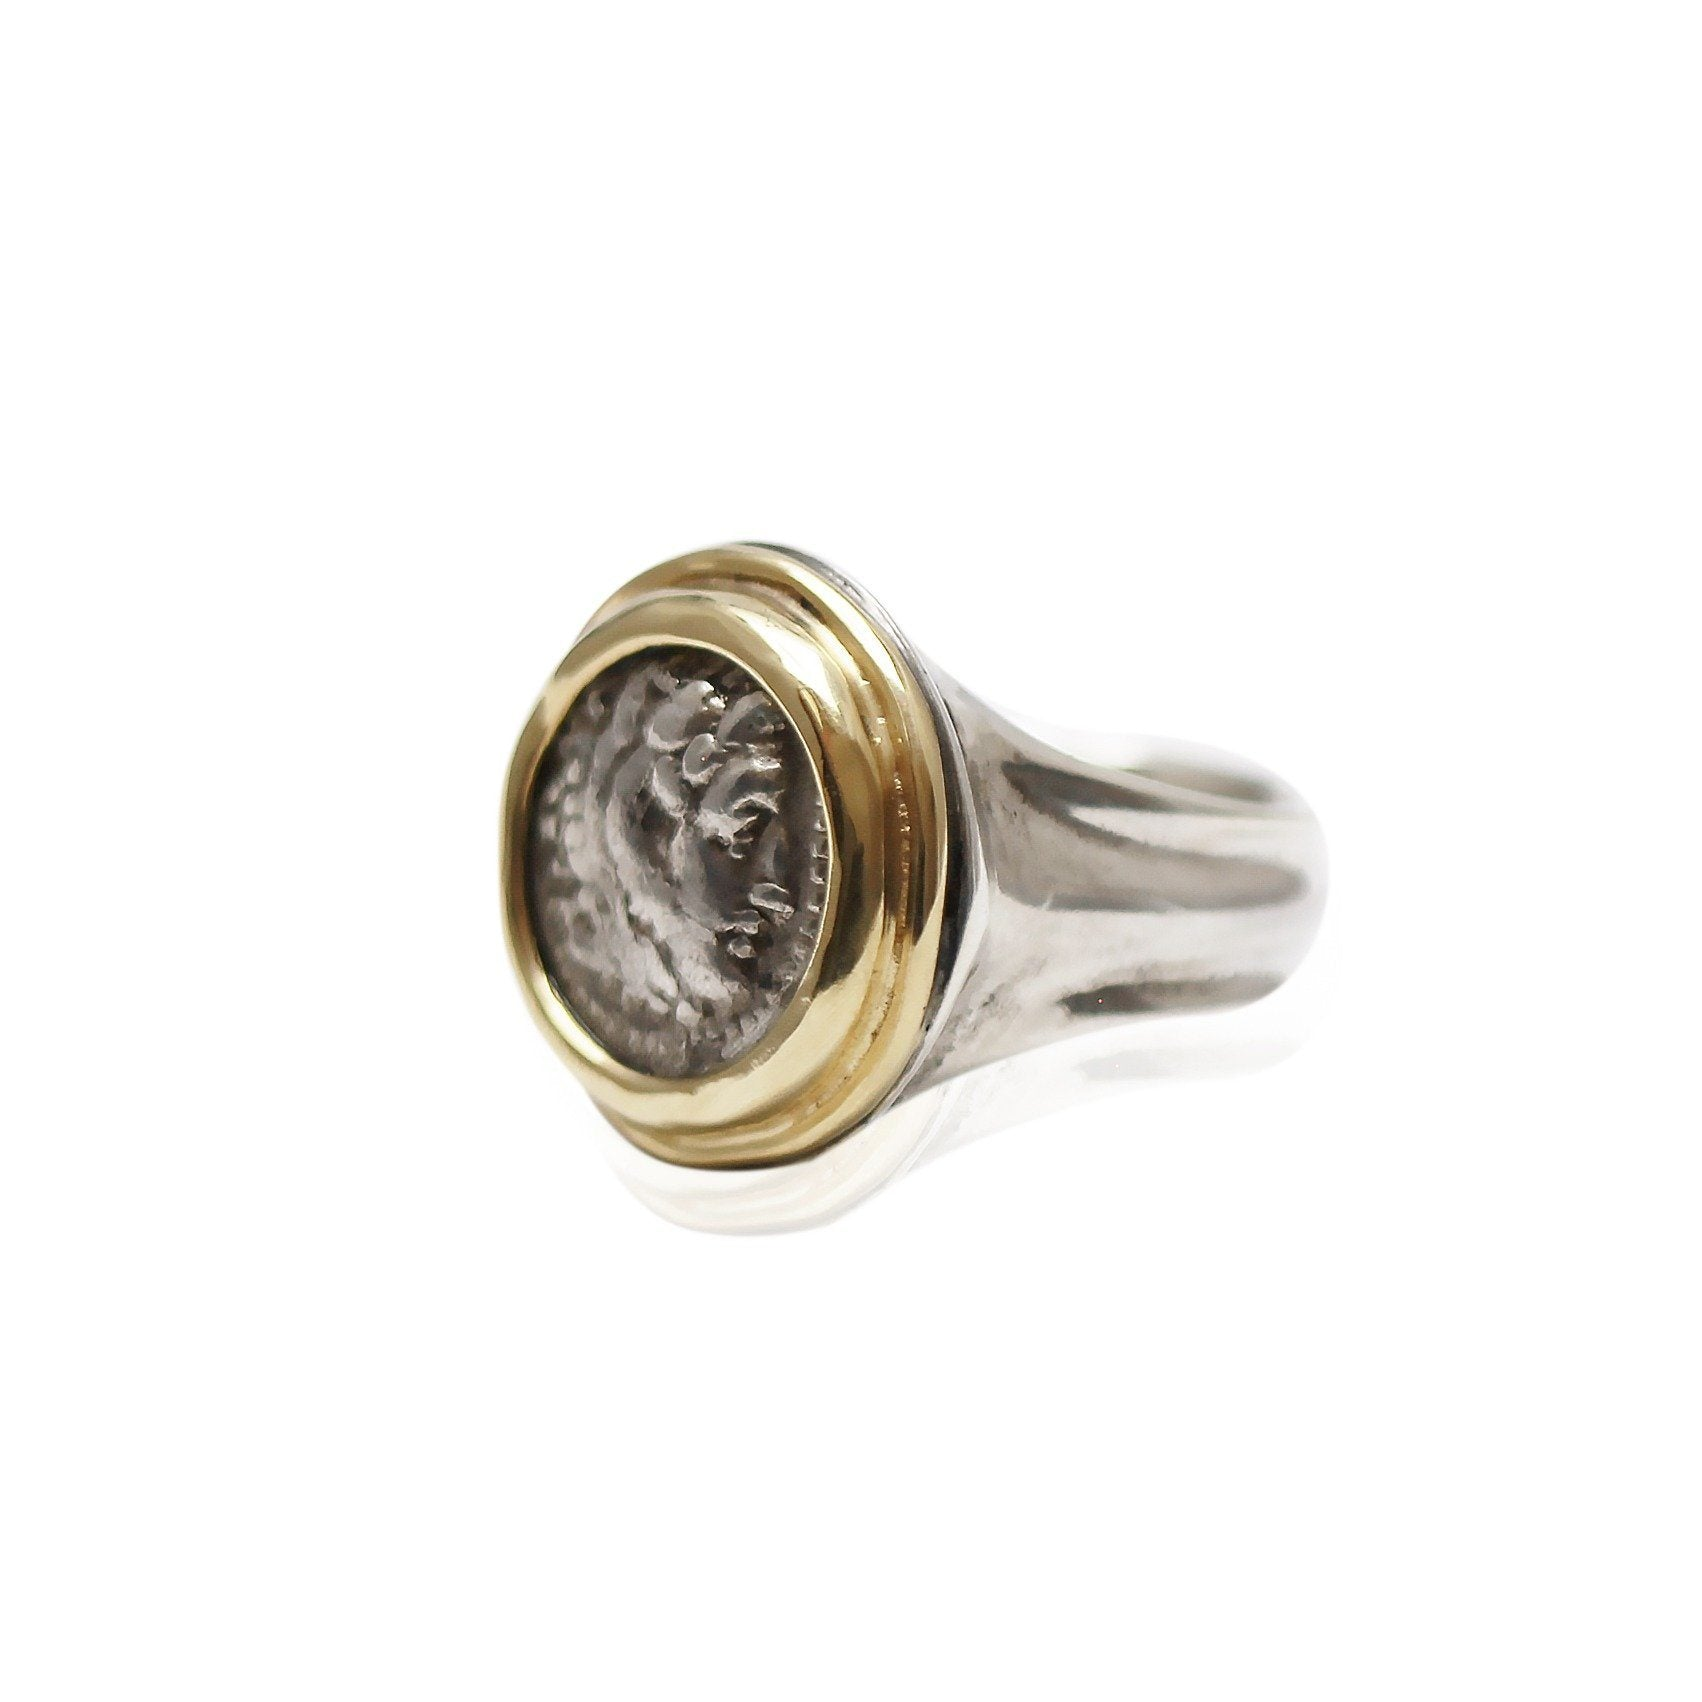 18K Gold Bezel, Silver Ring, Alexander the Great, 6754 - Erez Ancient Coin Jewelry, ancient coin jewelry, men jewelry, genuine ancient coins, made in the US